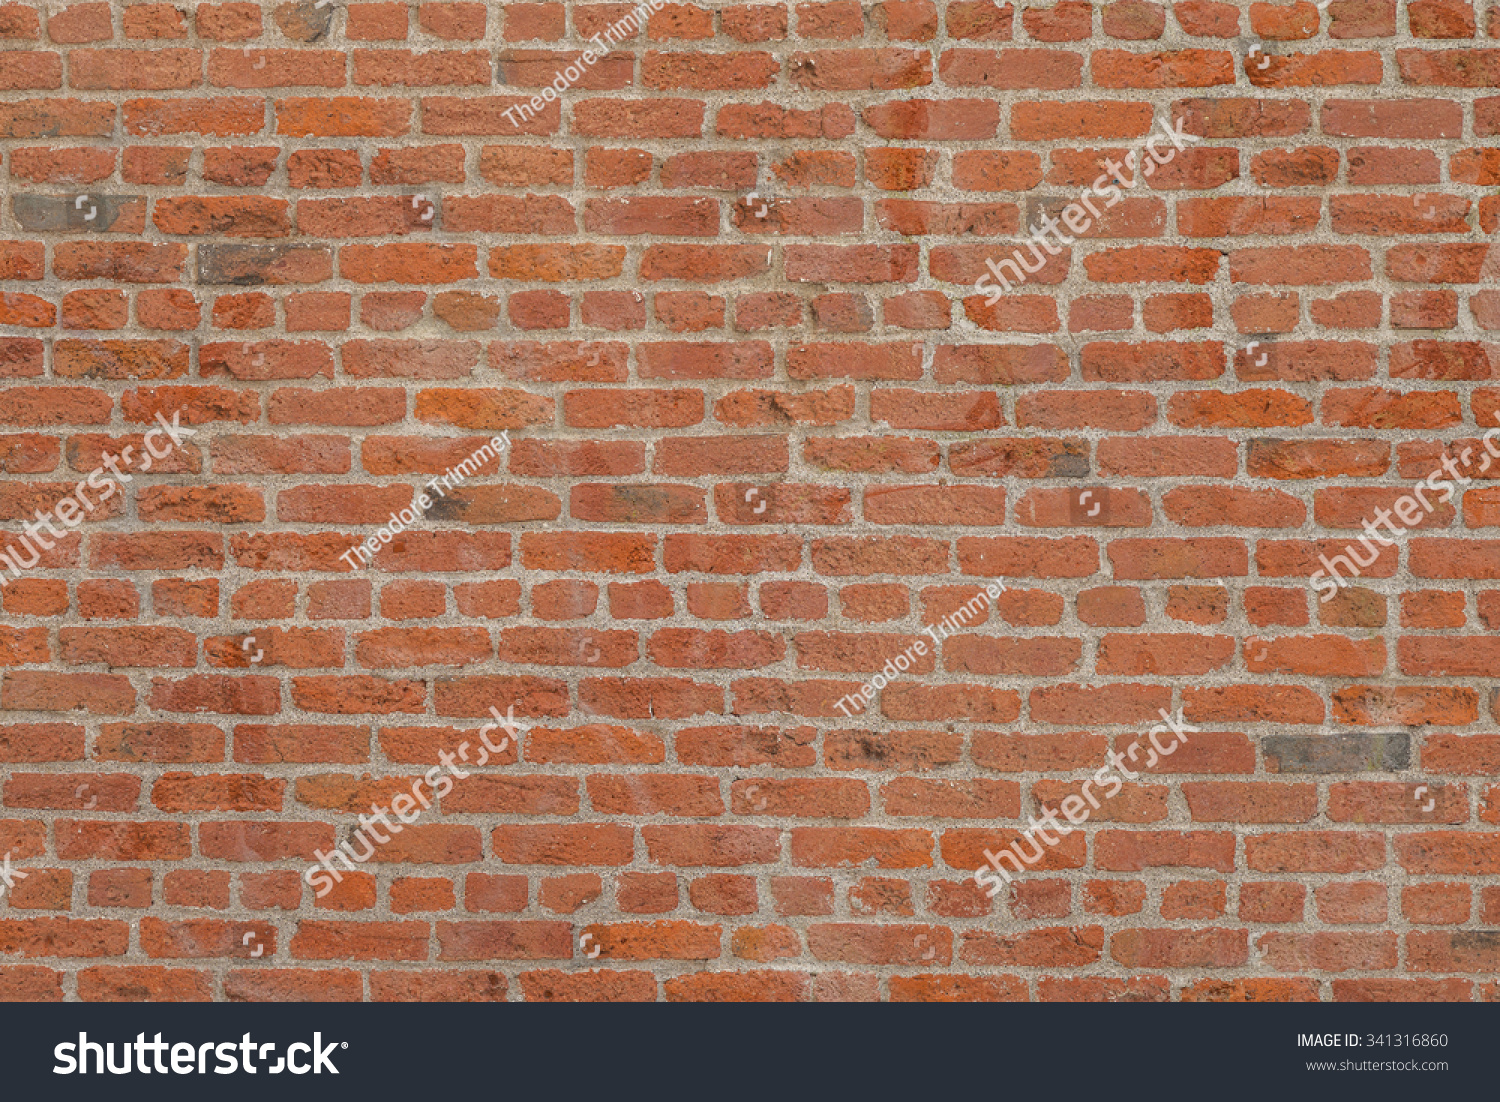 Vintage red brick exterior wall with white mortar cement for Uses for a brick